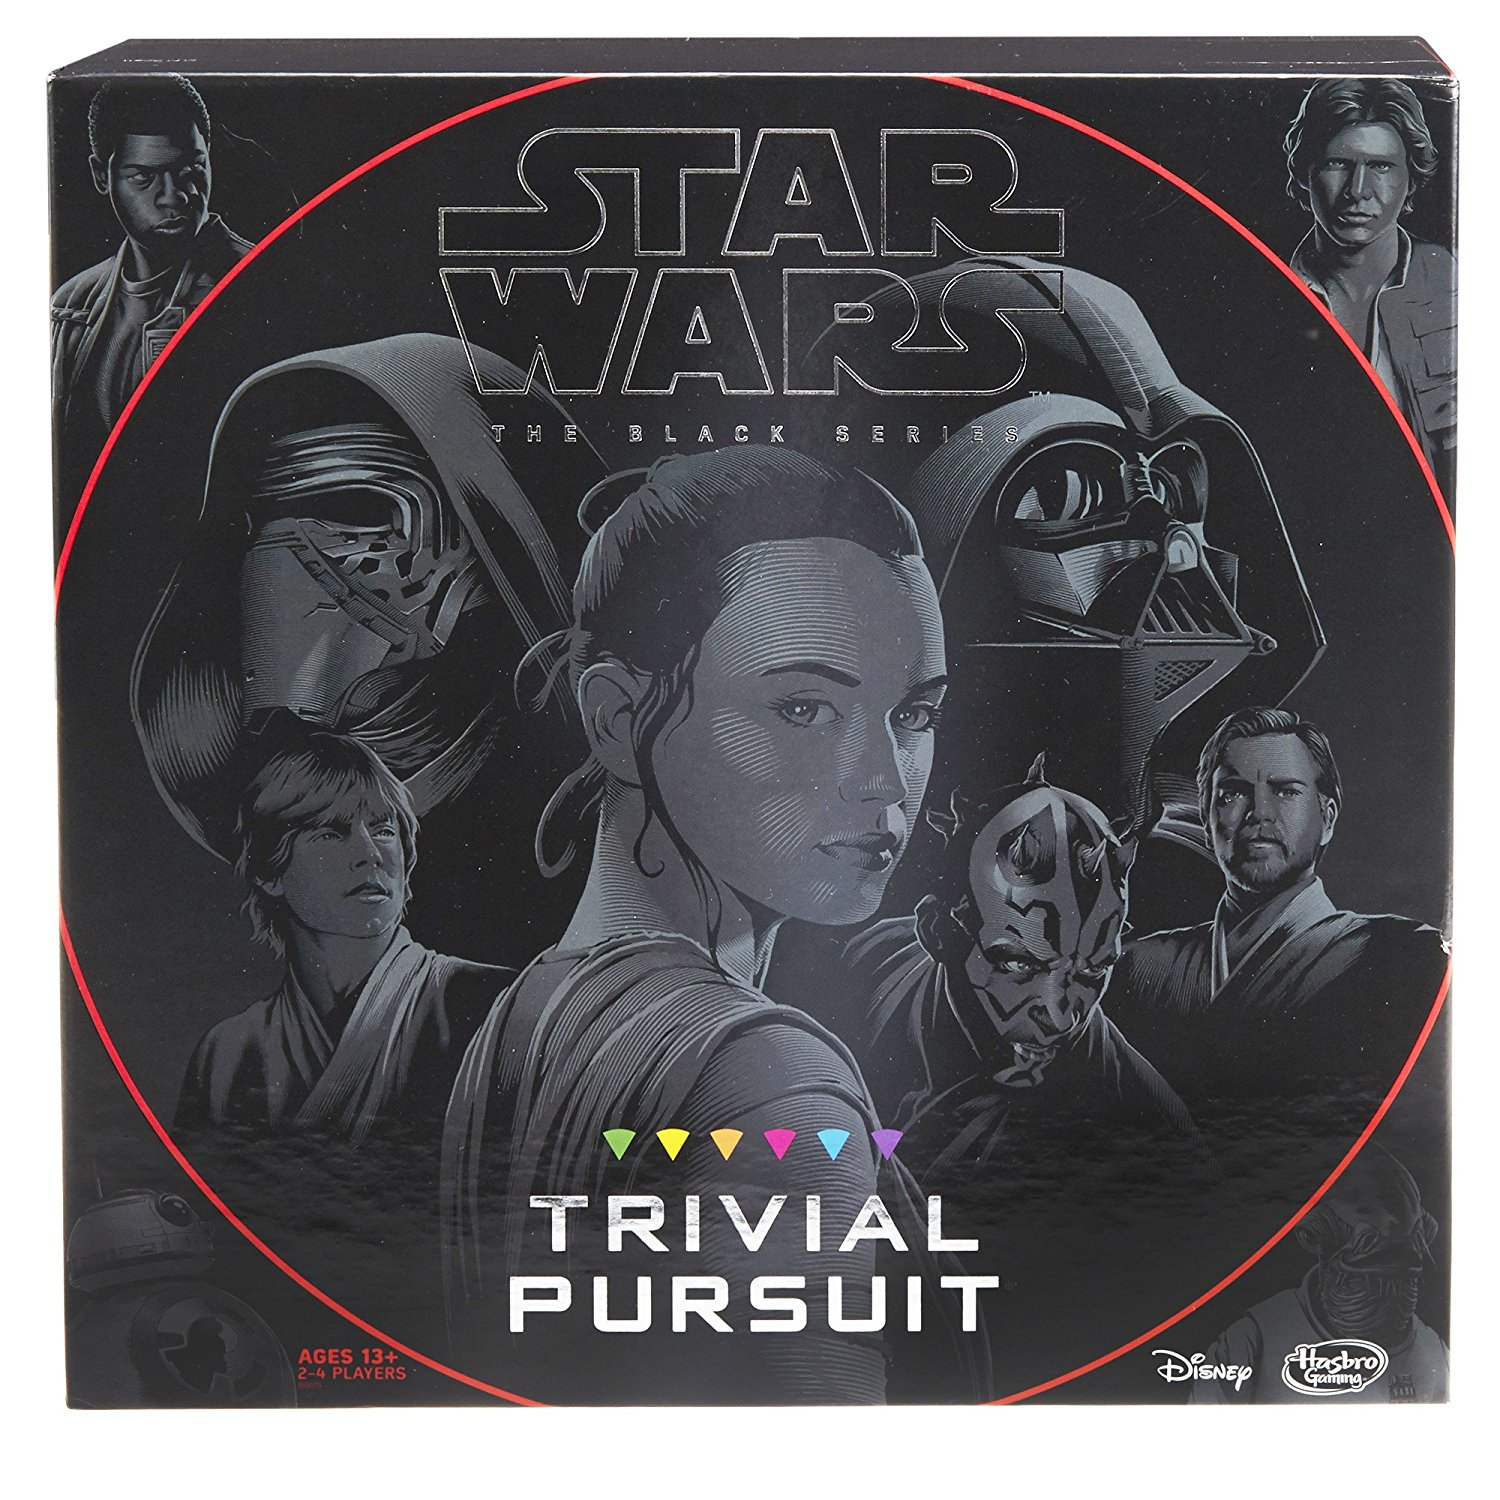 Trivial Pursuit: Star Wars The Black Series Edition, USA, Brand Hasbro by